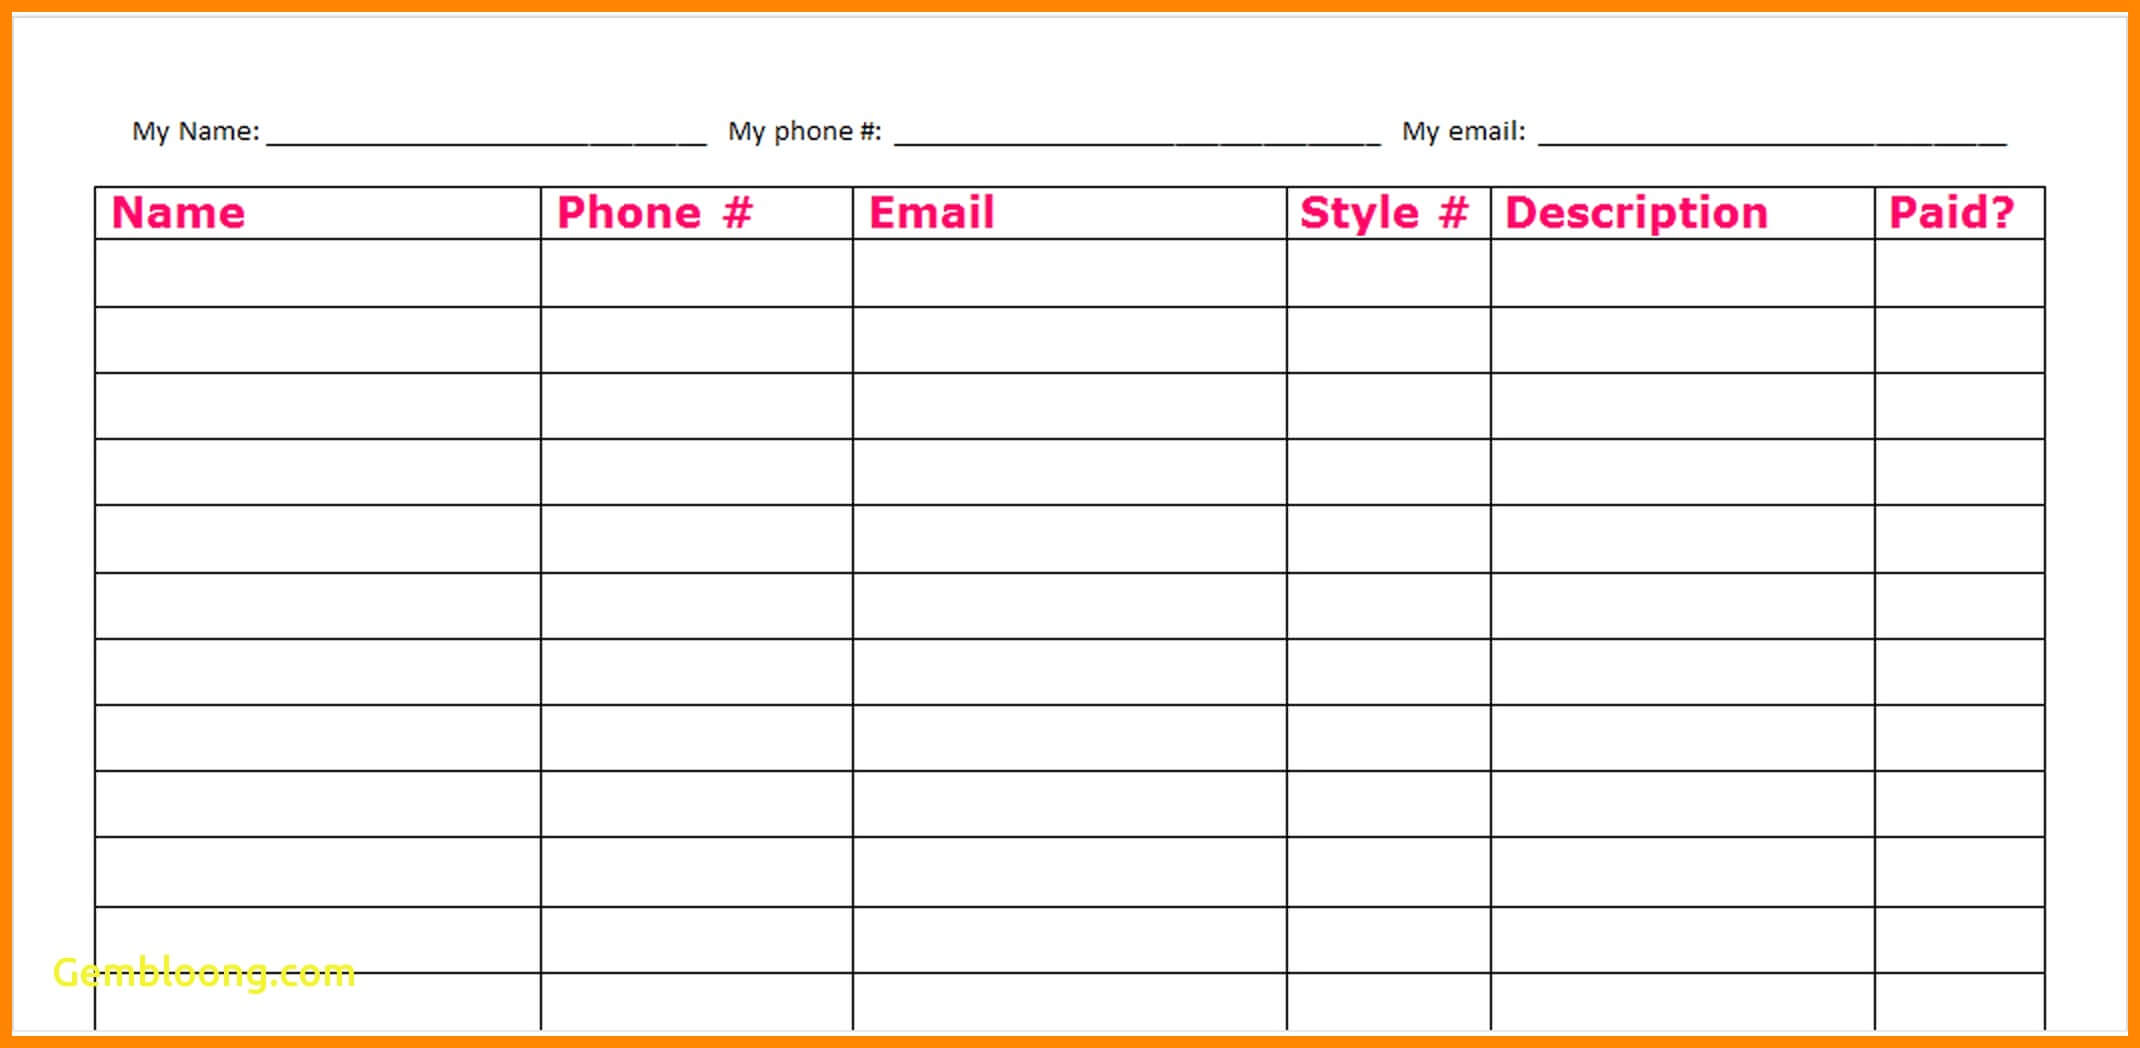 007 Fundraising Order Form Template Fundraiser Inspirational Throughout Blank Fundraiser Order Form Template